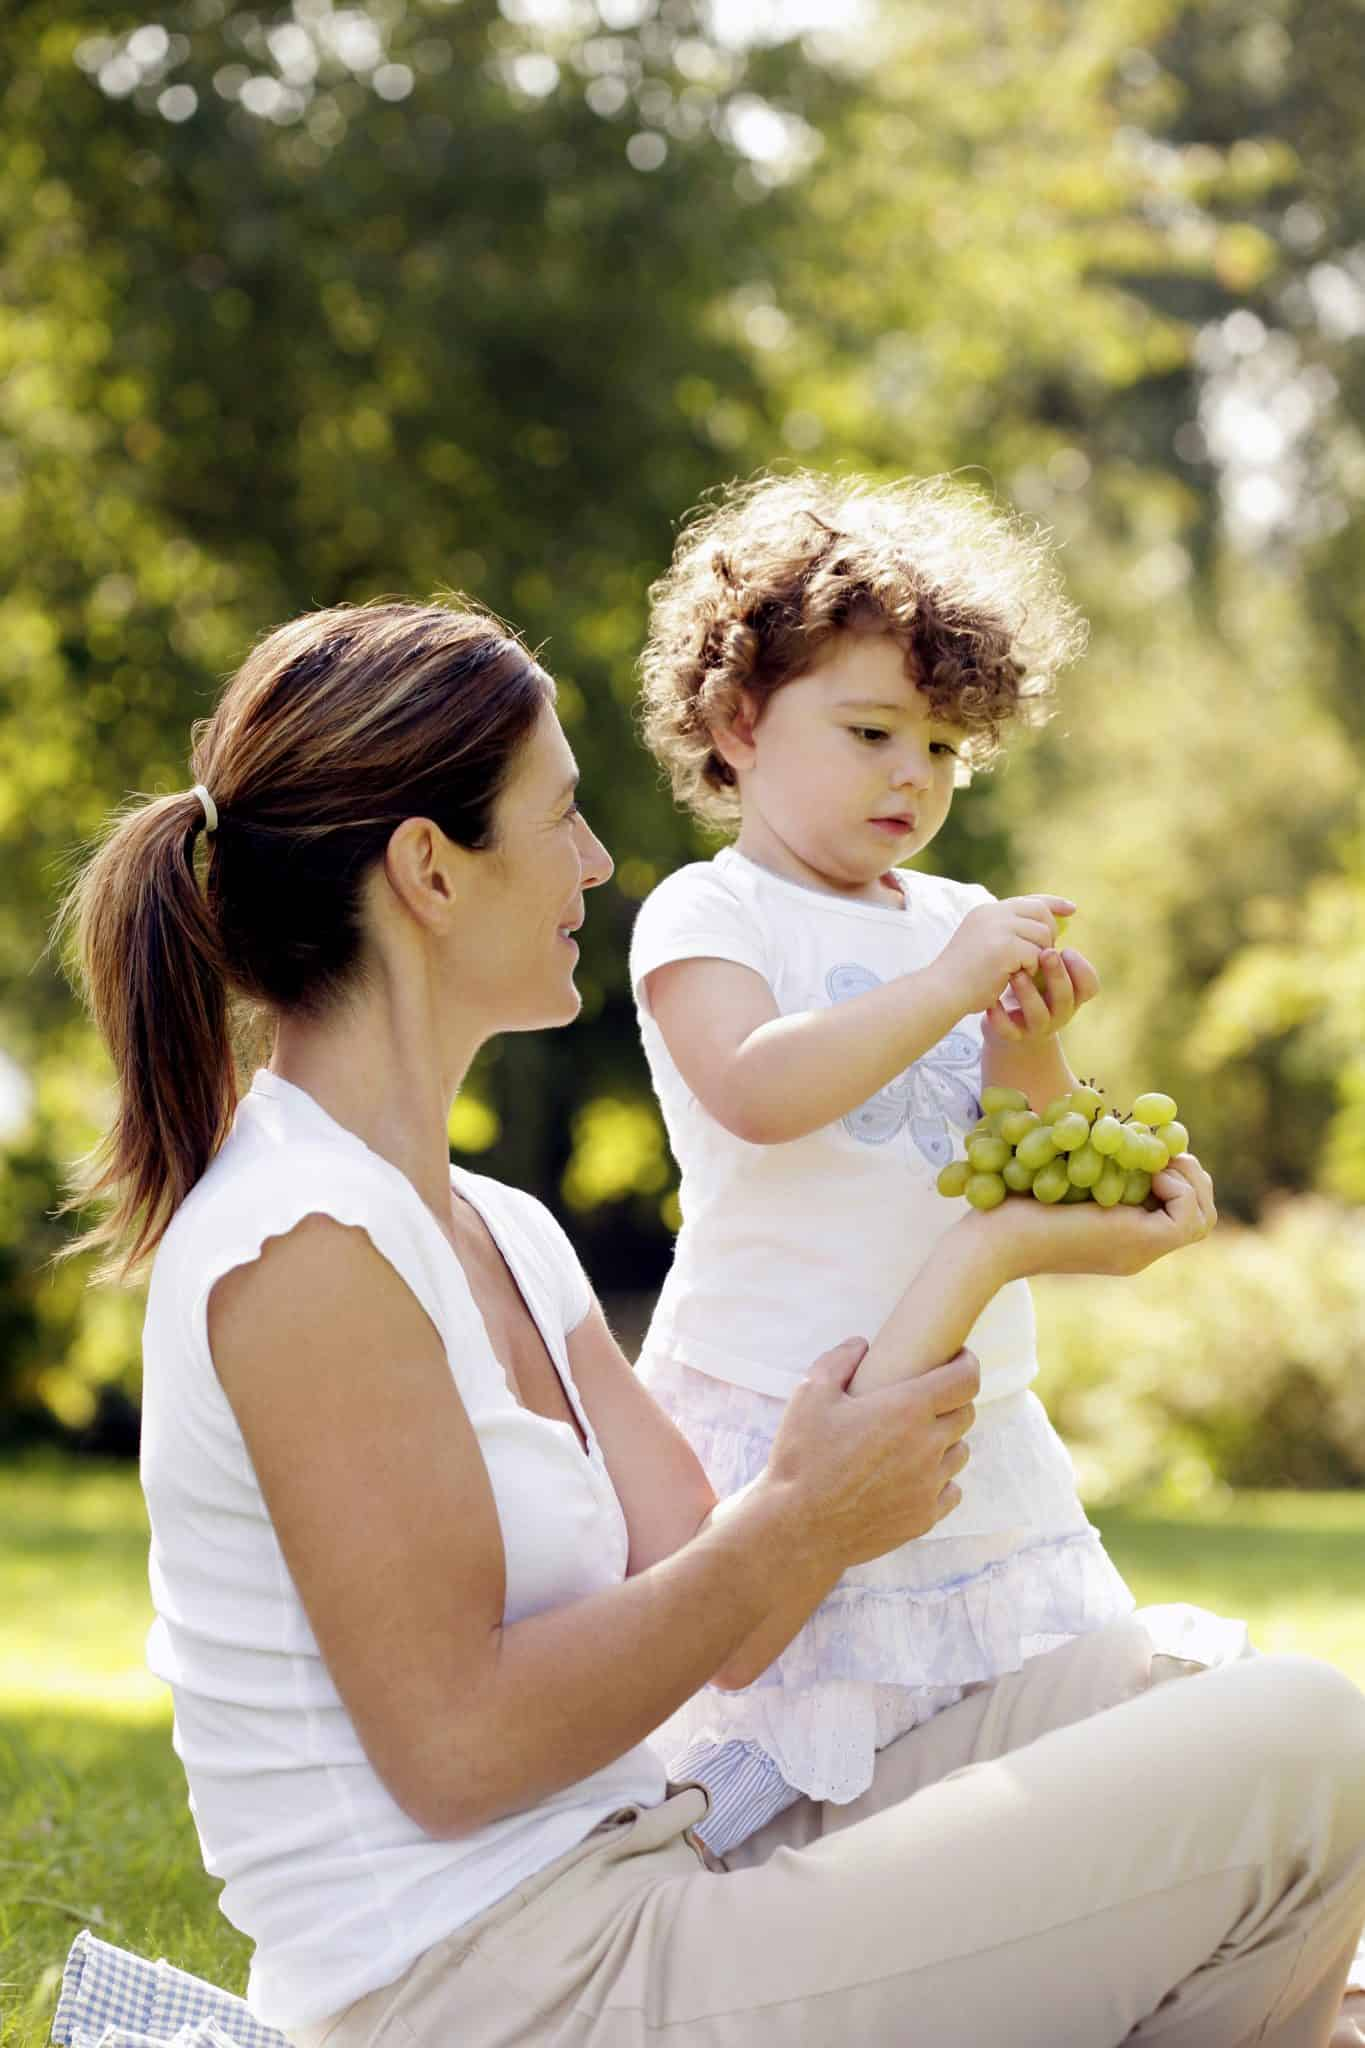 girl getting grape from mother